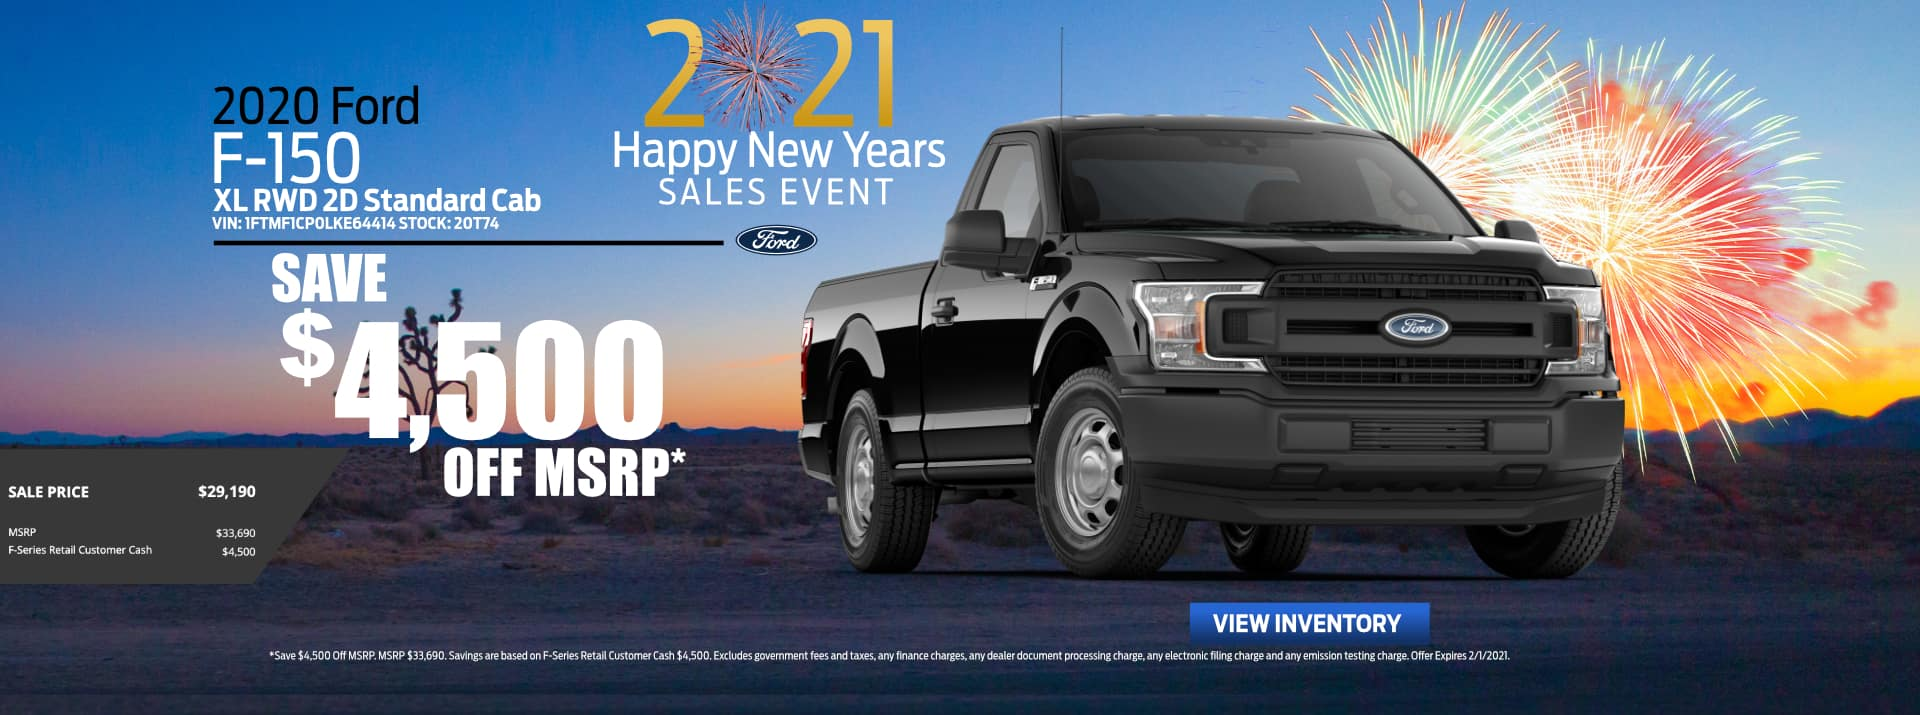 Revised_January-2021 Ford F-150 Fiesta Ford